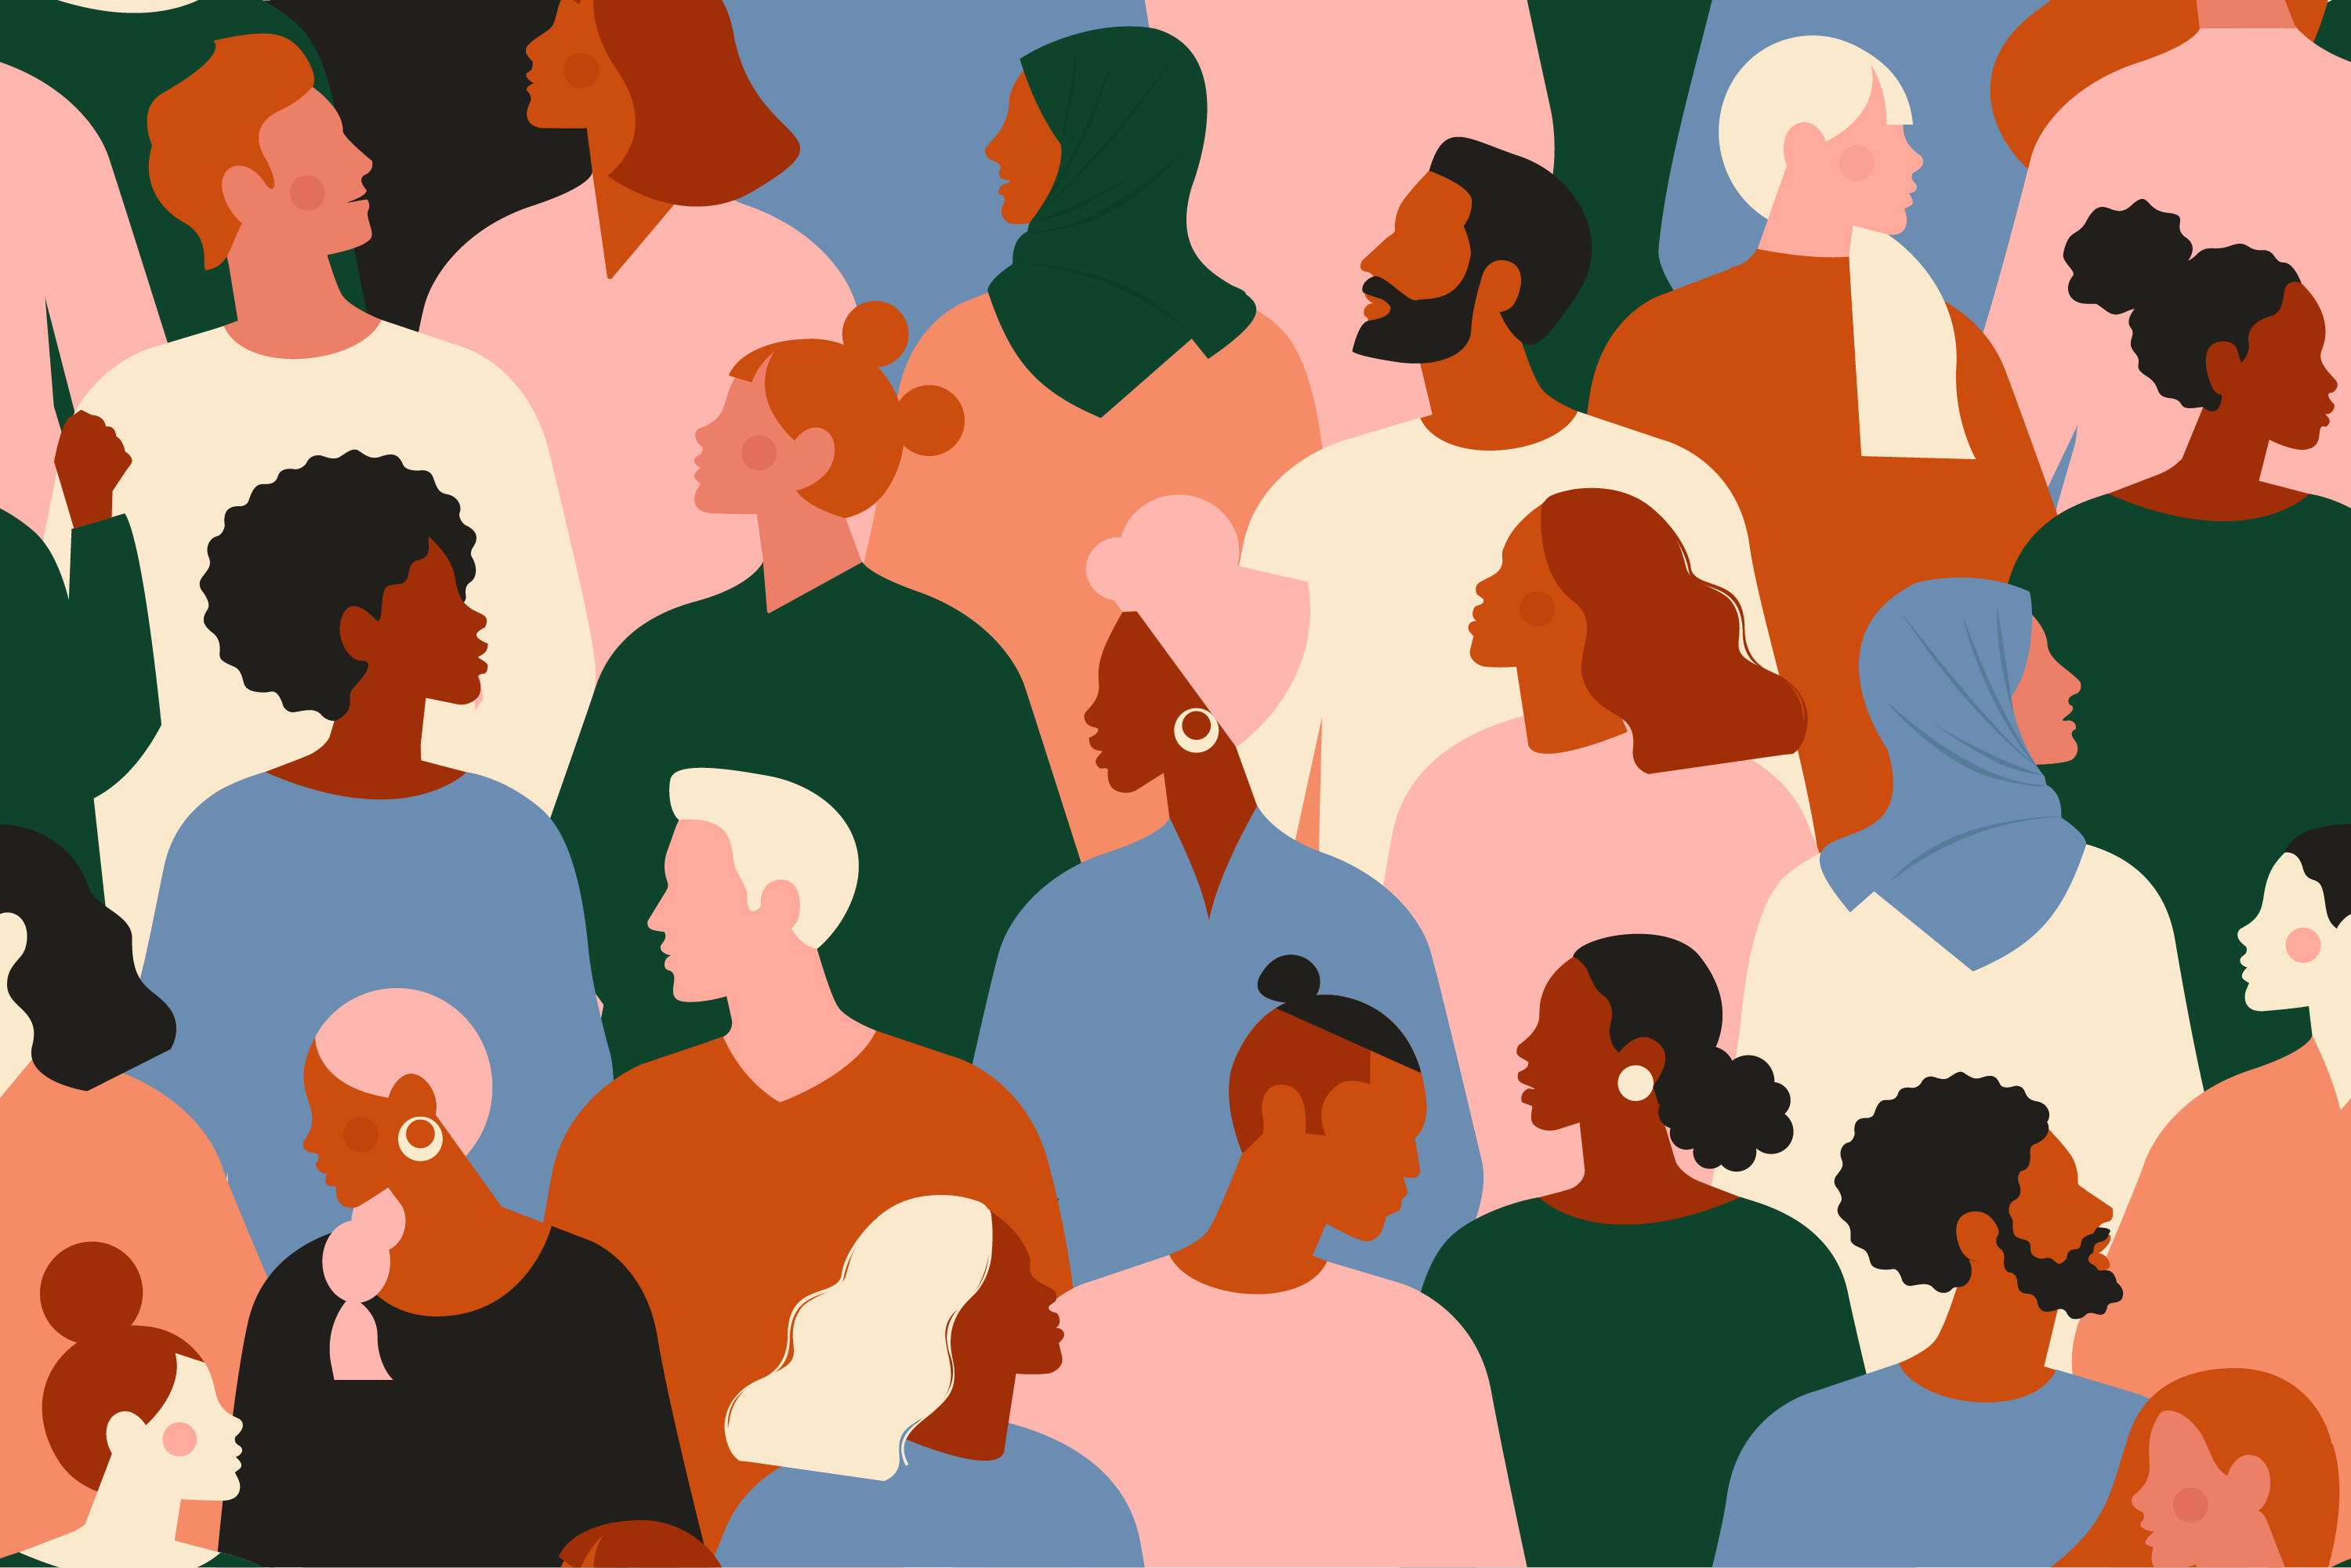 illustration of multiple diverse people